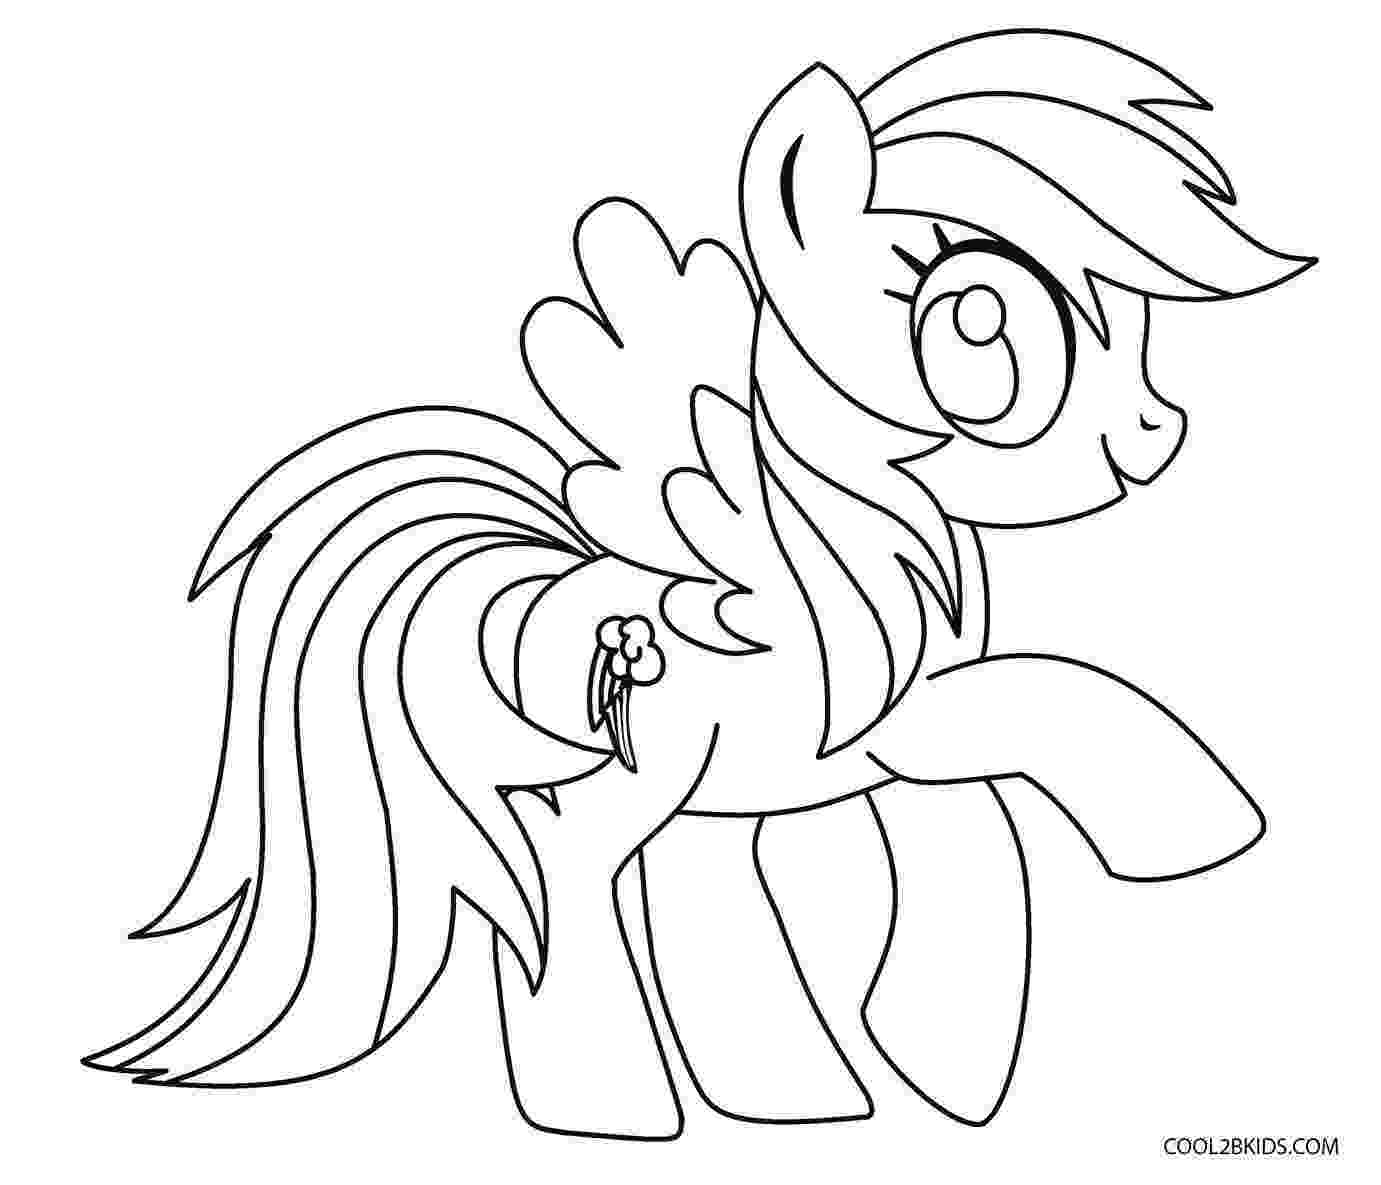 coloring pages rainbow dash free printable my little pony coloring pages for kids pages rainbow coloring dash